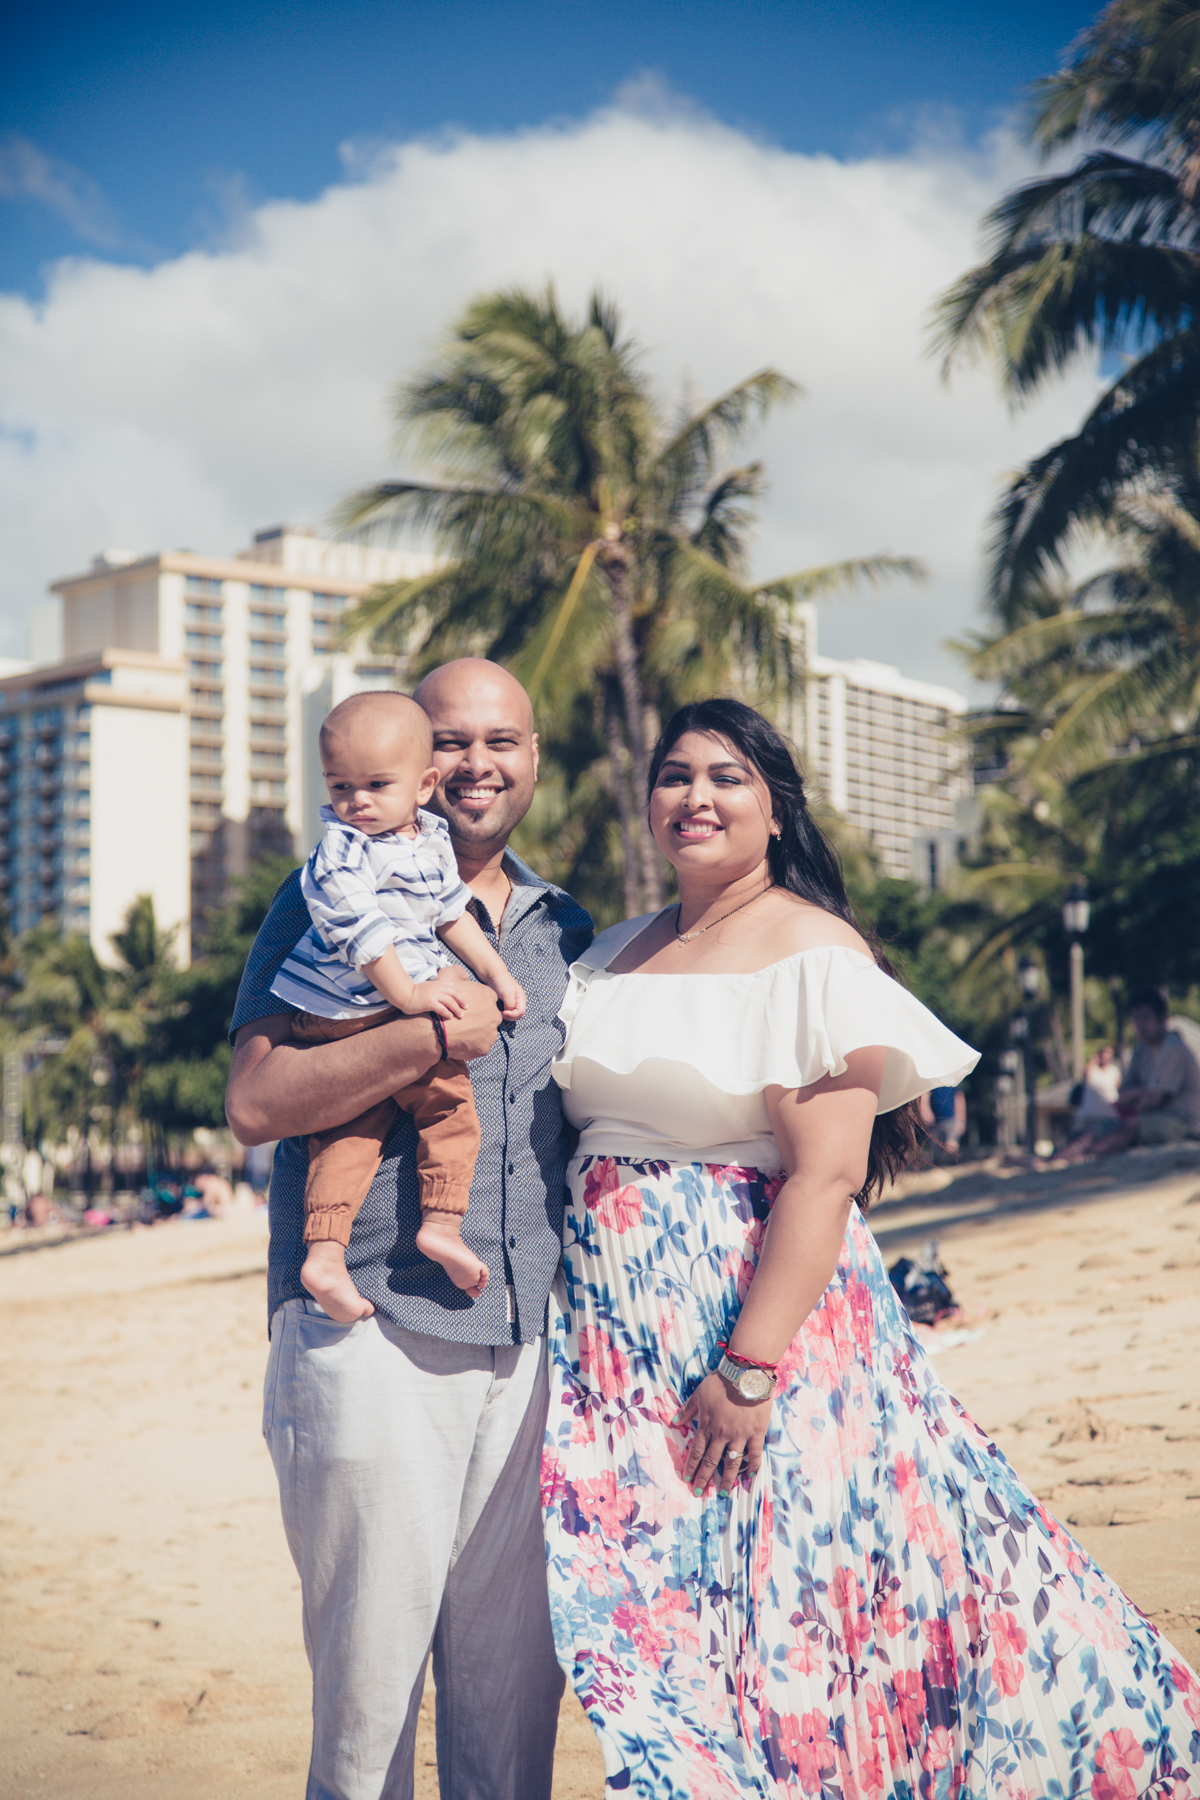 Family vacation photo on the beach in Waikiki